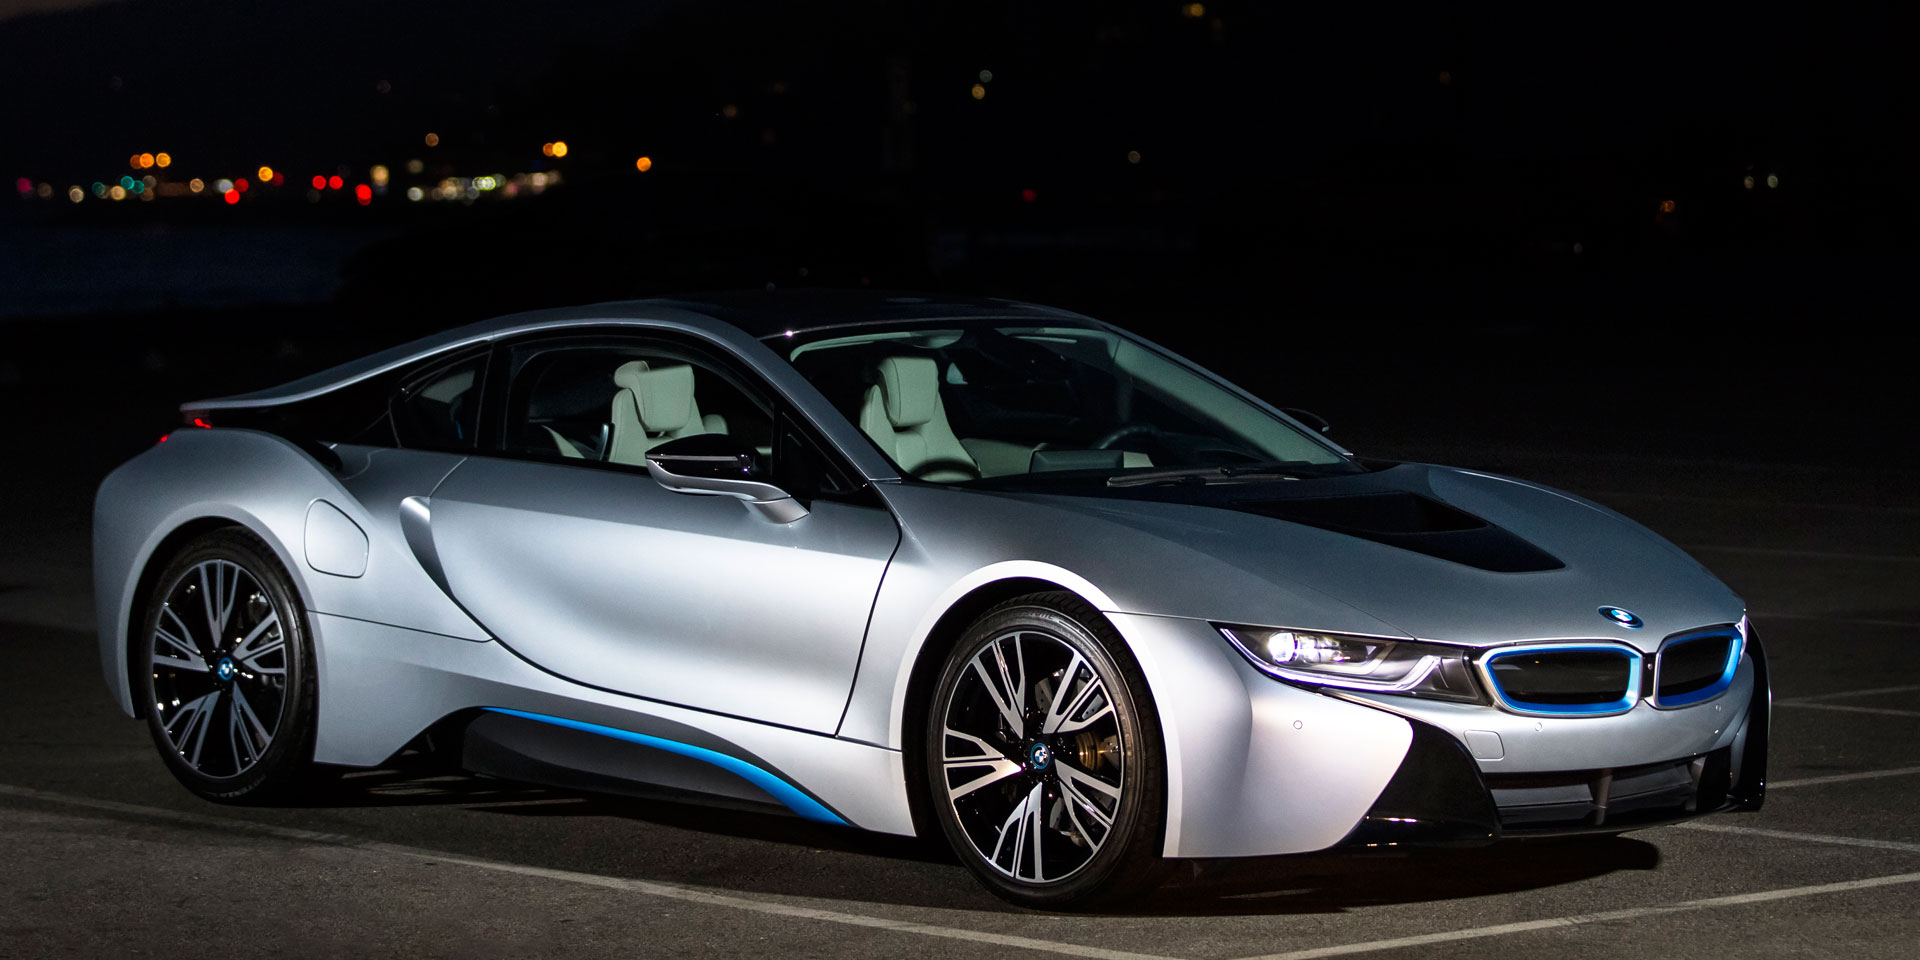 Used Cars For Sale New Cars For Sale Car Dealers Cars Chicago - 2015 bmw i8 for sale